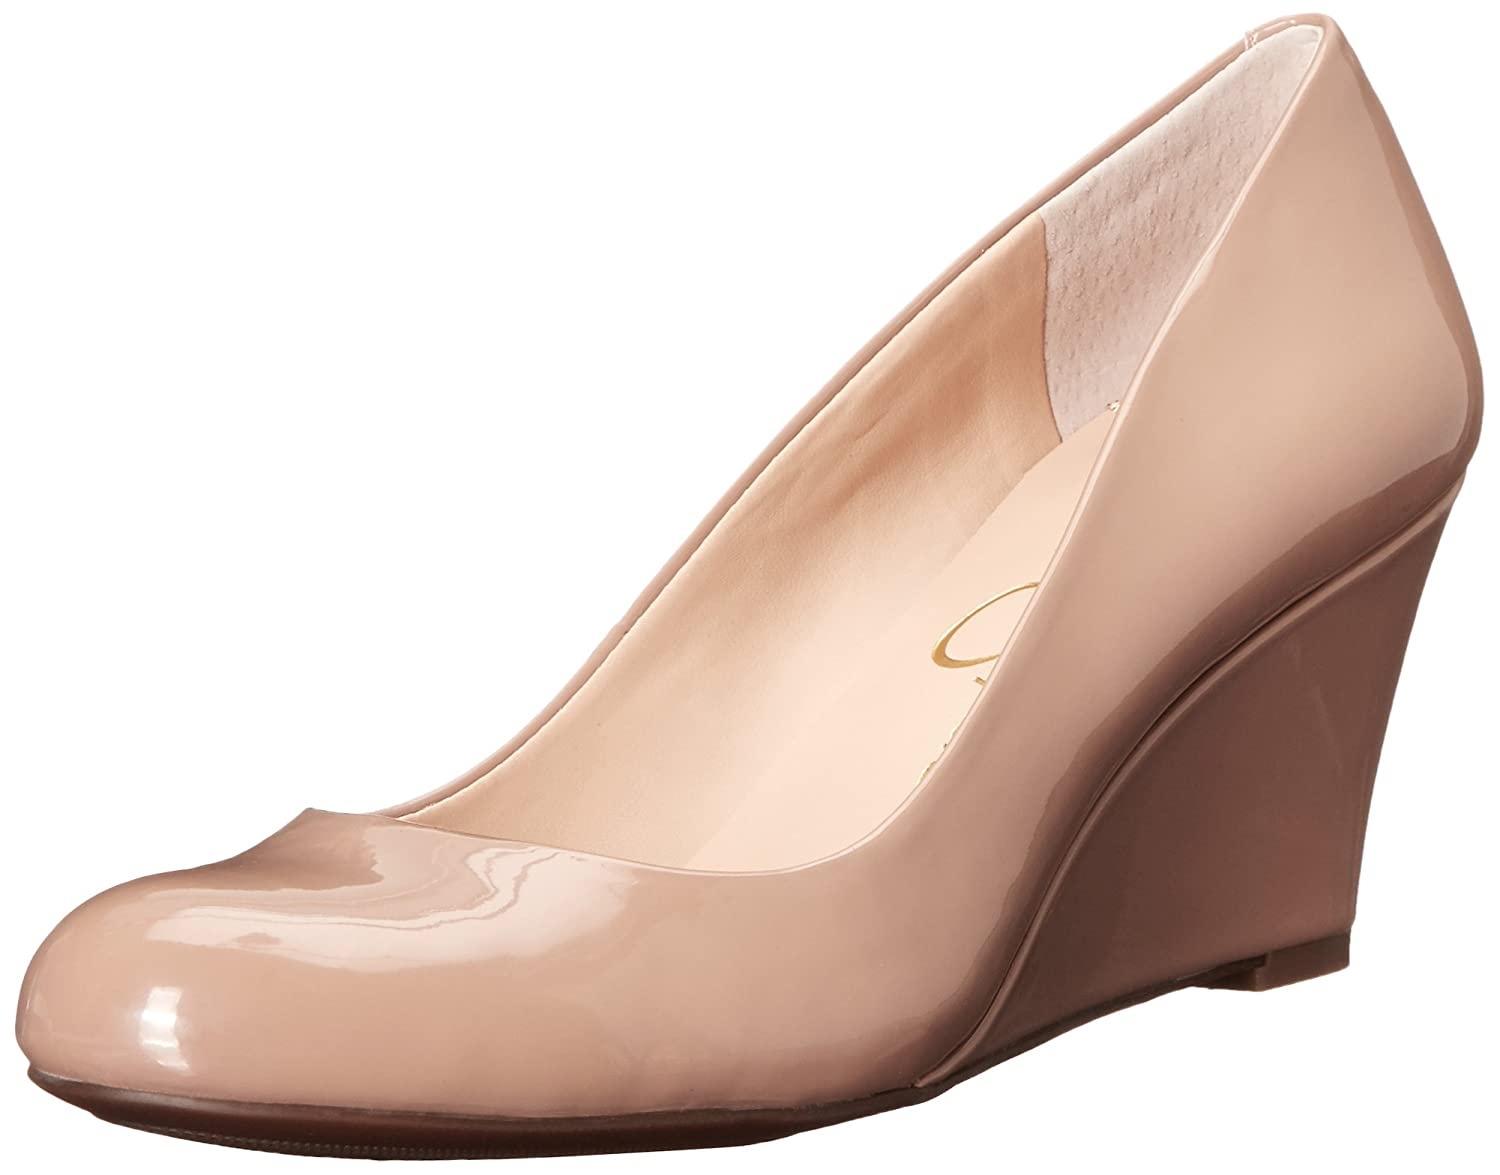 Nude Patent Jessica Simpson Women's Sampson Pumps